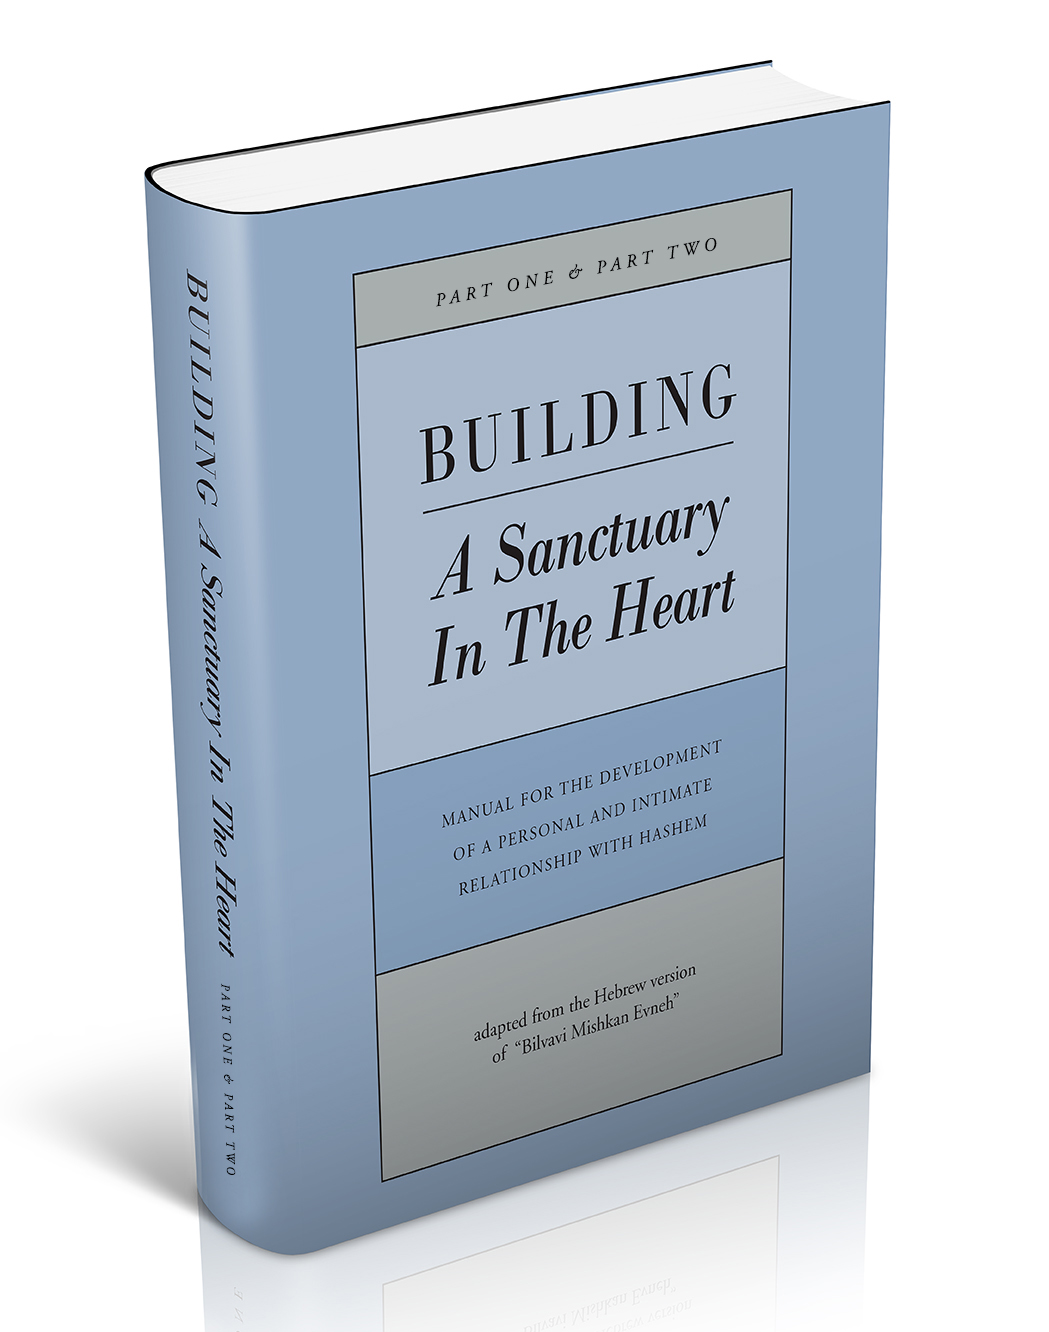 Building a Sanctuary in the Heart | Part One & Part Two